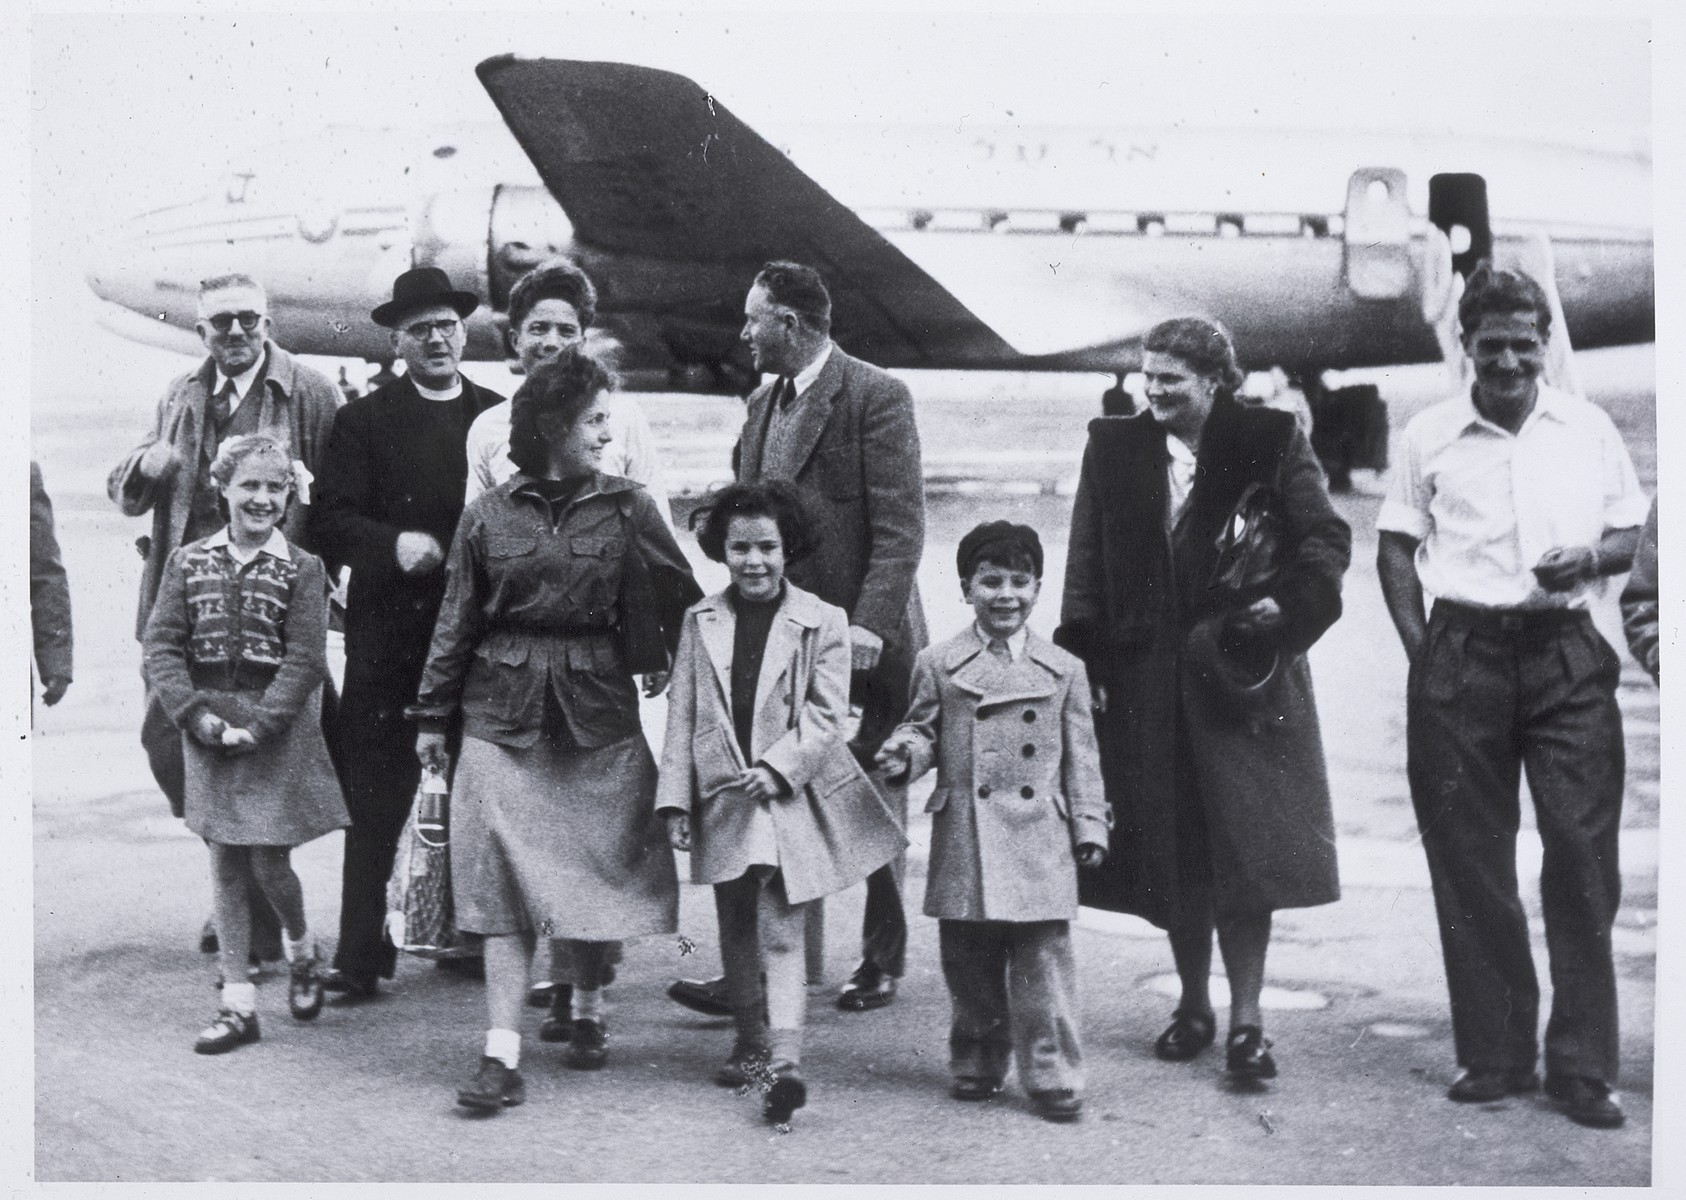 Father Louis Celis and Maria Tabruyn arrive at Lod Airport accompanied by the children they rescued: Regina, Wolfgang, Siegmund, and Sonja Rotenberg.